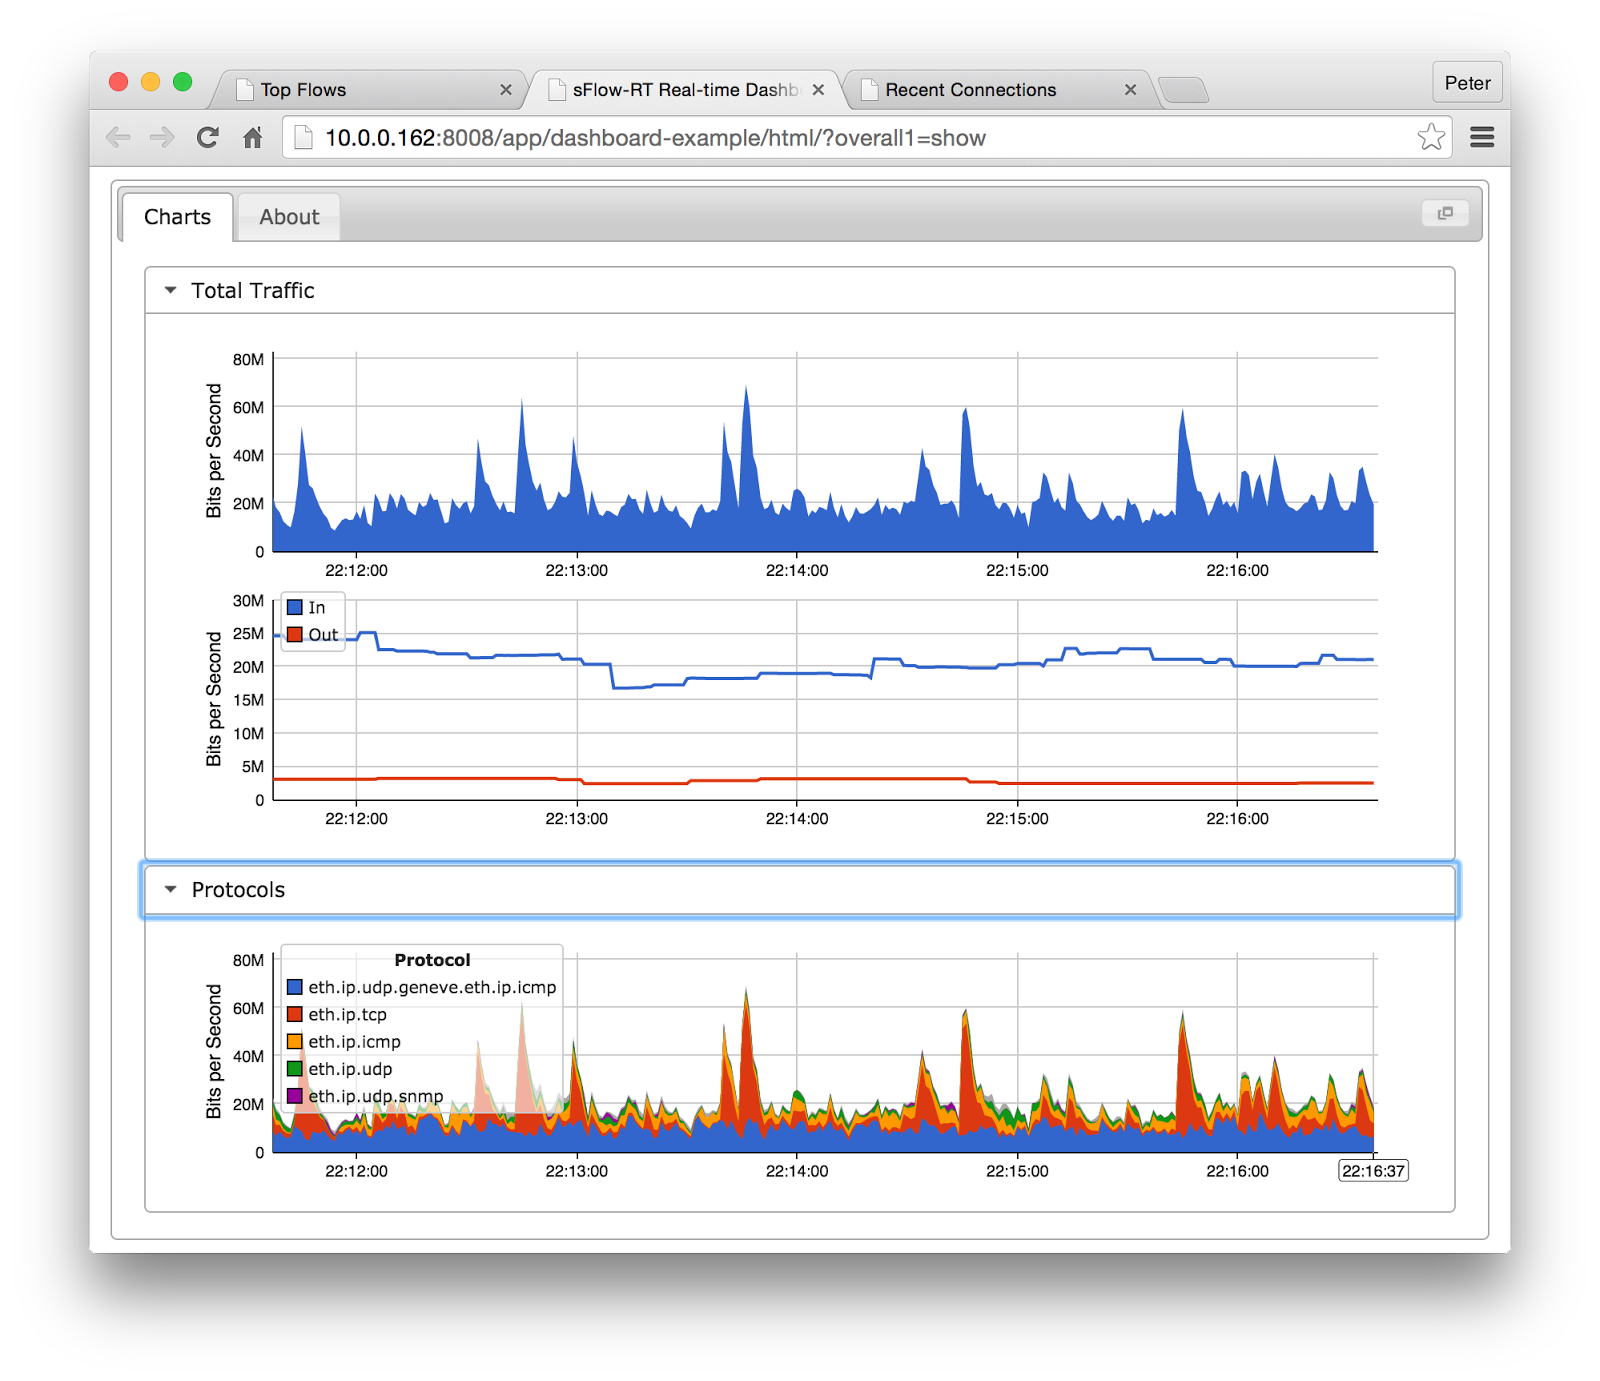 sFlow: Real-time analytics and control applications